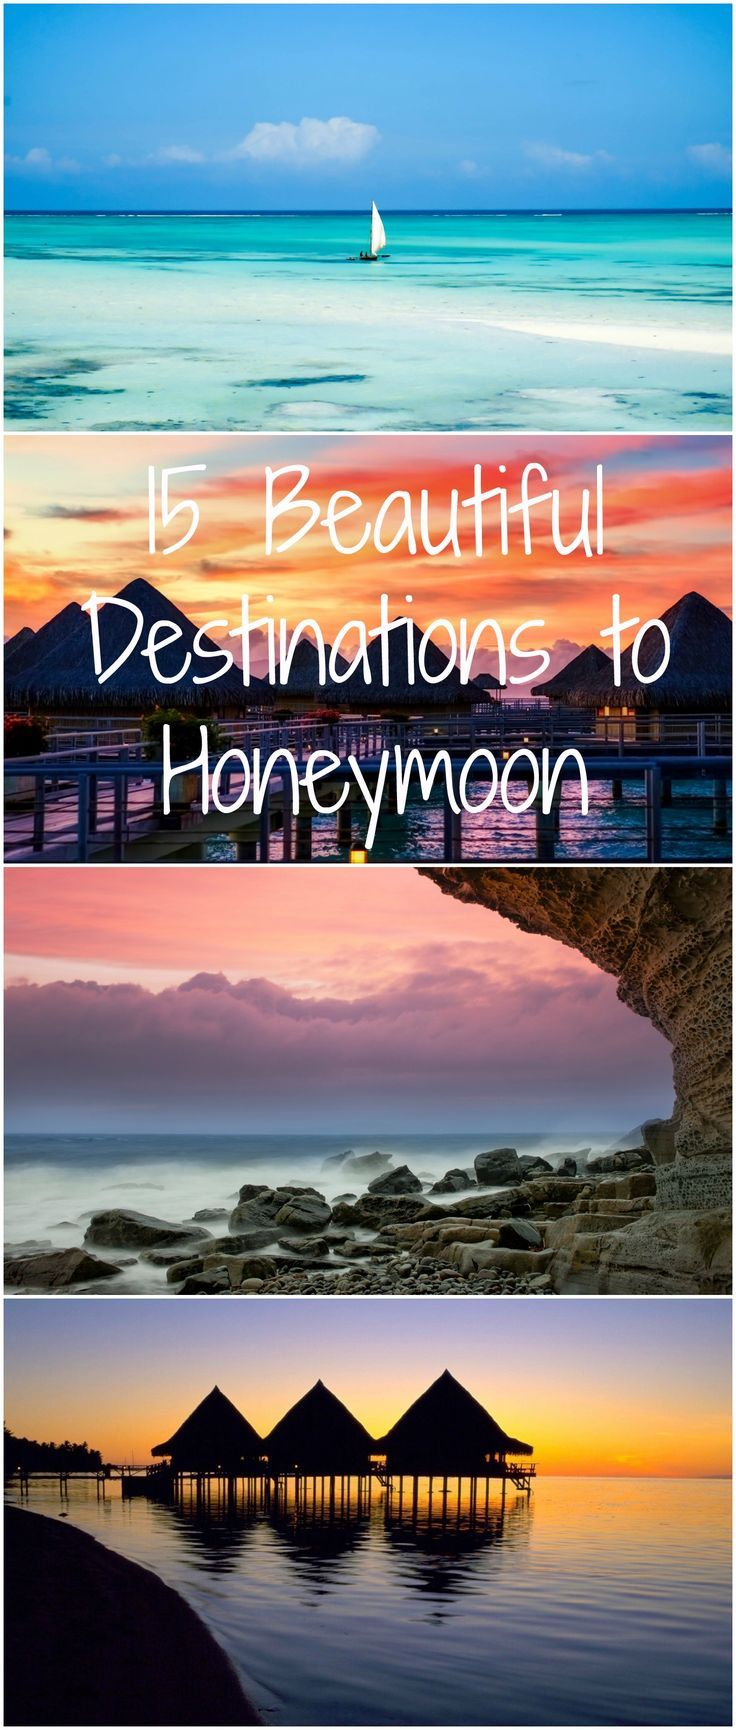 Tahiti, The Seychelles, the beaches of Africa, Scotland, Norway...all of these are great places to travel to and take a honeymoon this year!